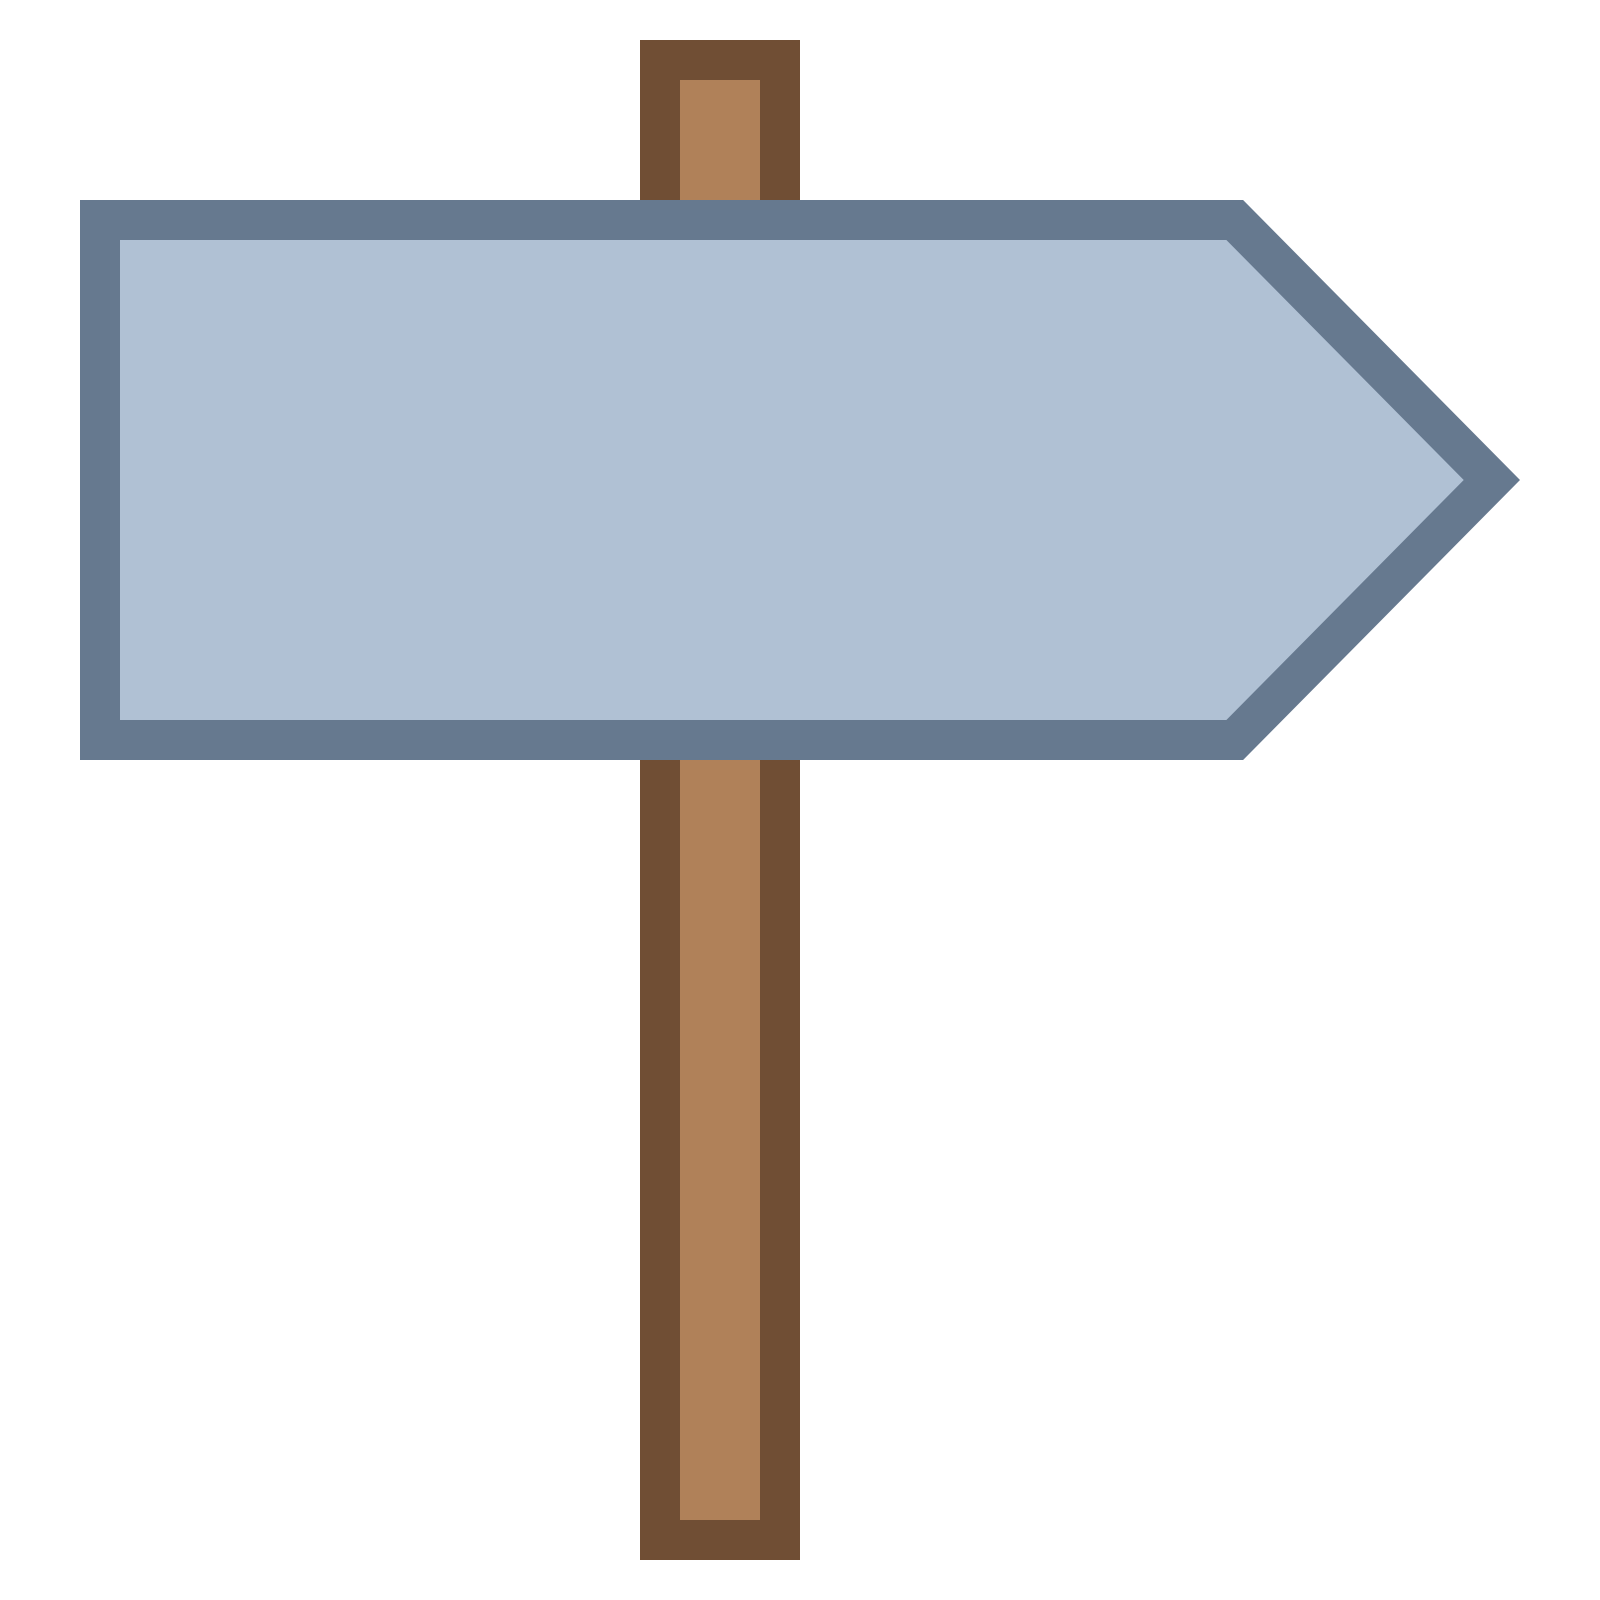 Signpost icon - PNG Signpost